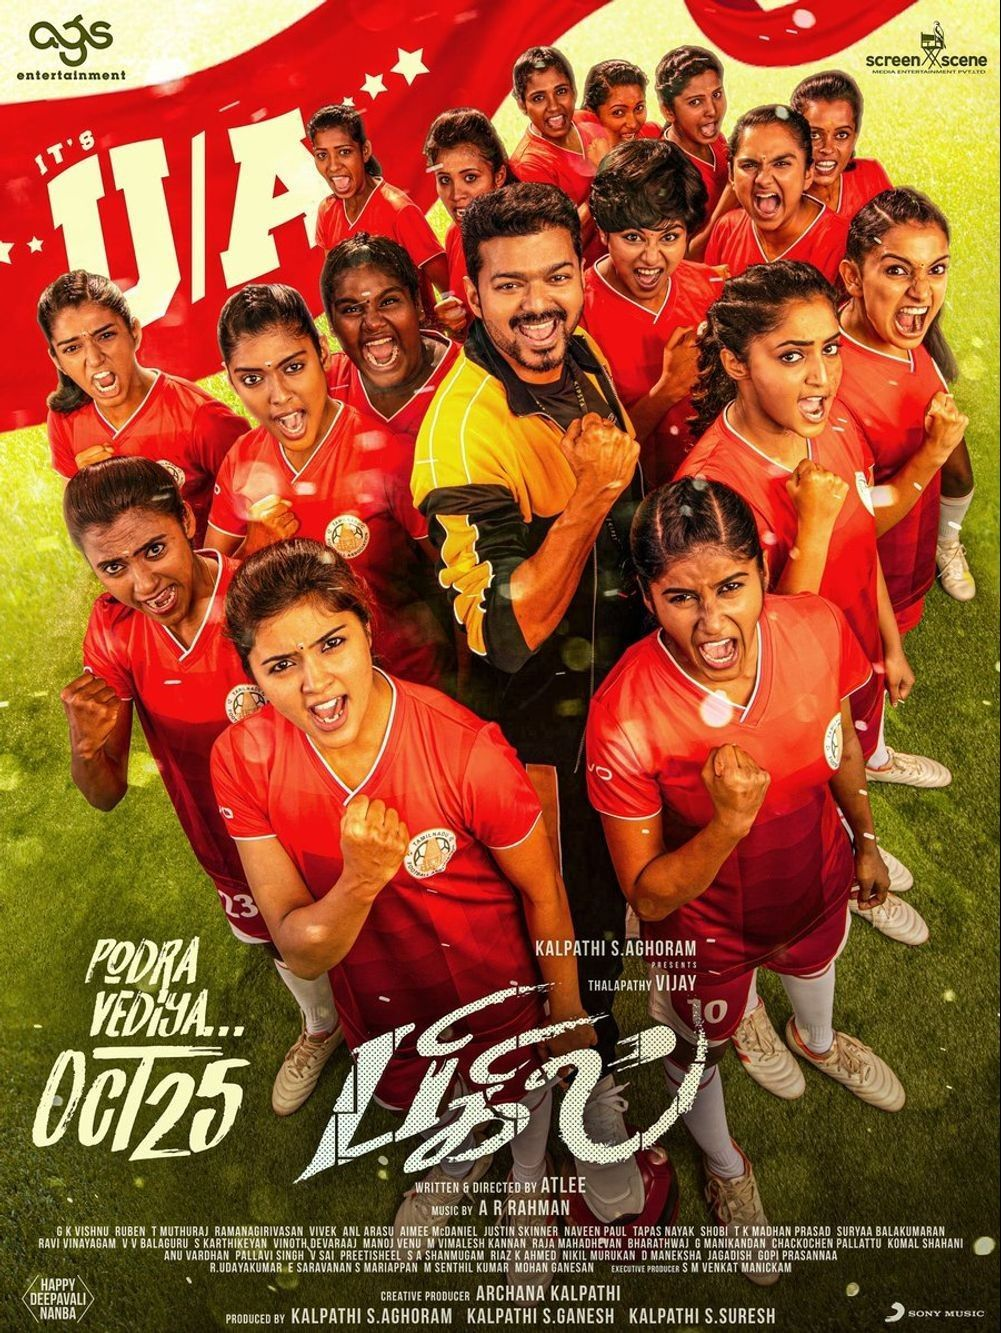 Bigil Movie Latest HD Photos & Posters, Wallpapers Download (1080p) (47107) - Bigil, Vijay, Indhuja Ravichandran